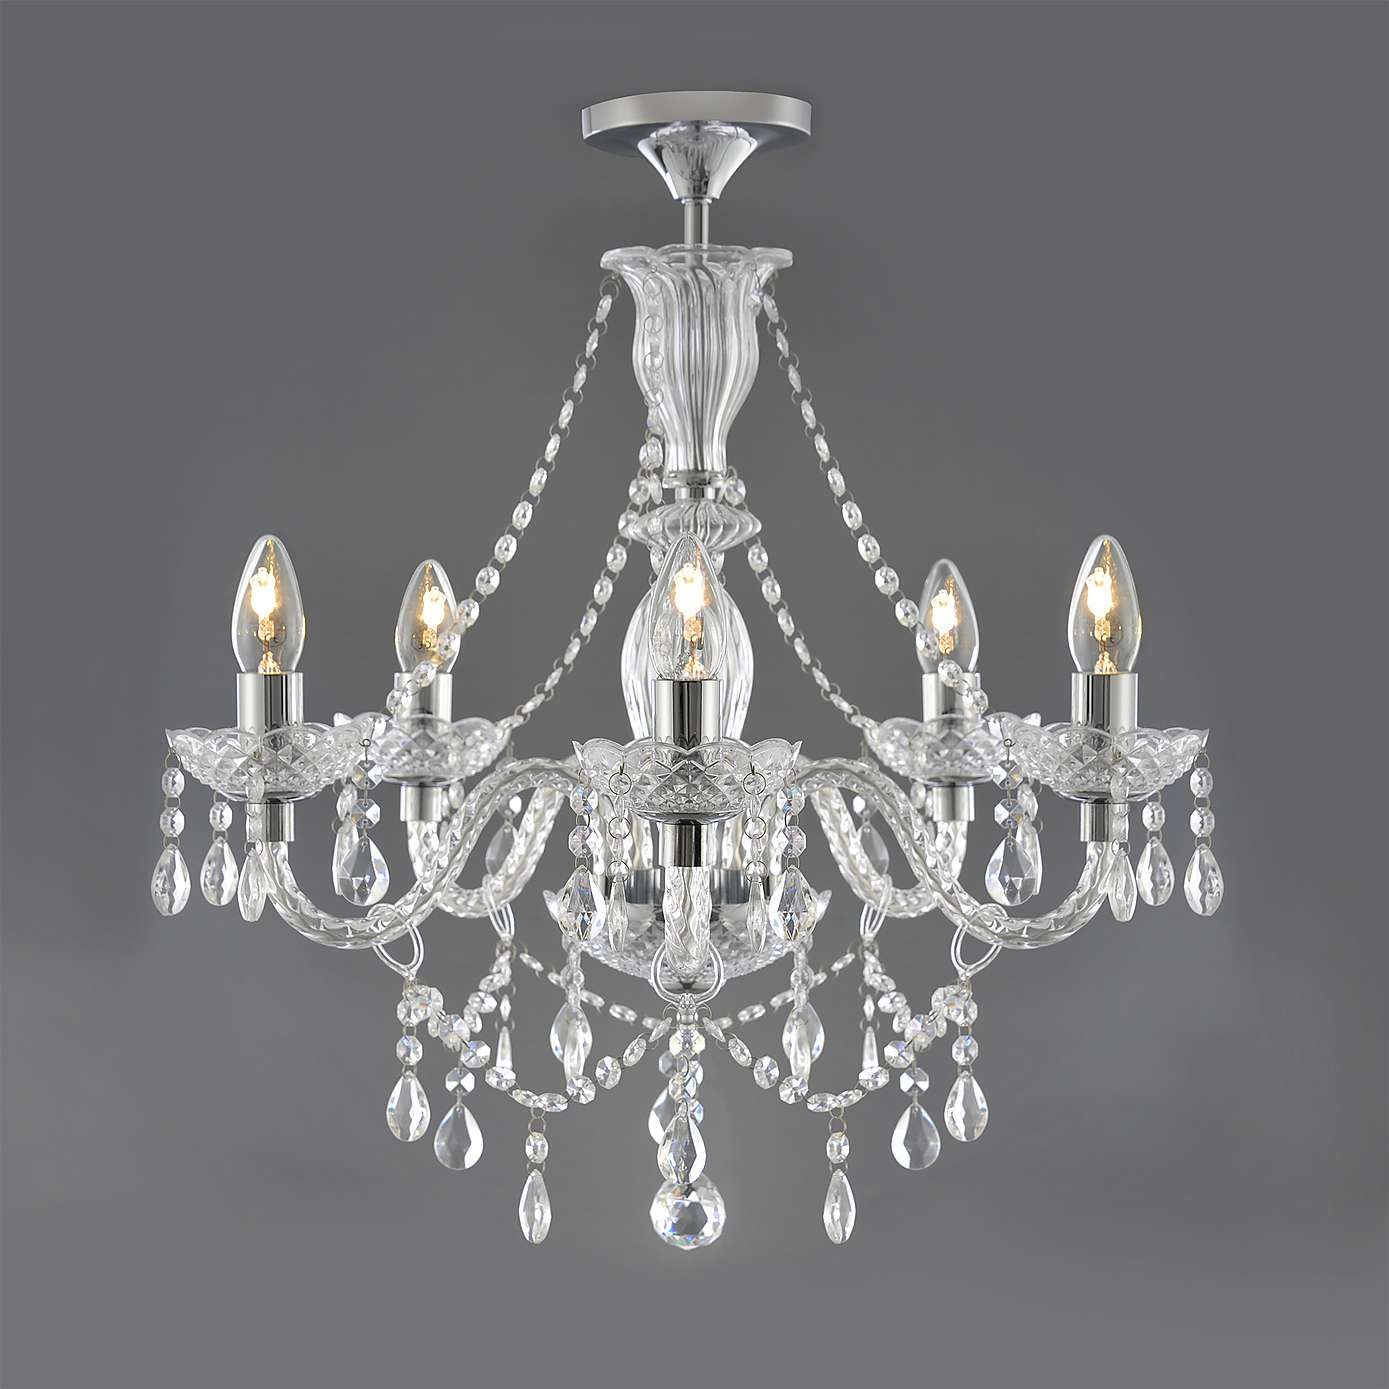 crystal chandelier dunelm # 13